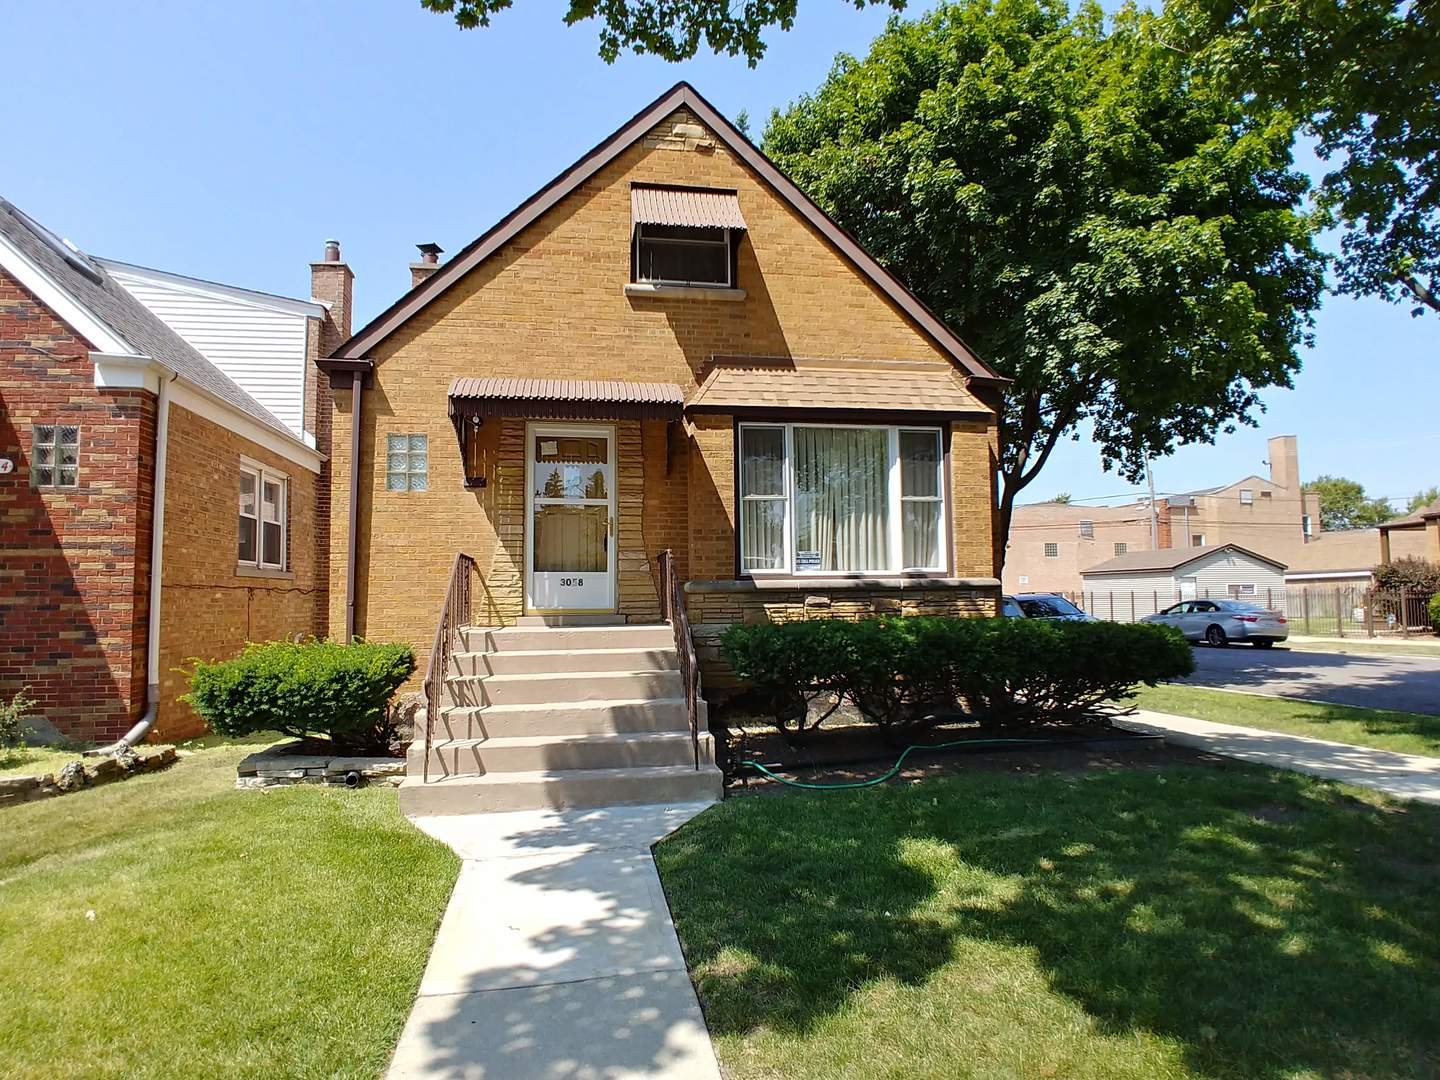 3058-Rutherford-Avenue---CHICAGO-Illinois-60634